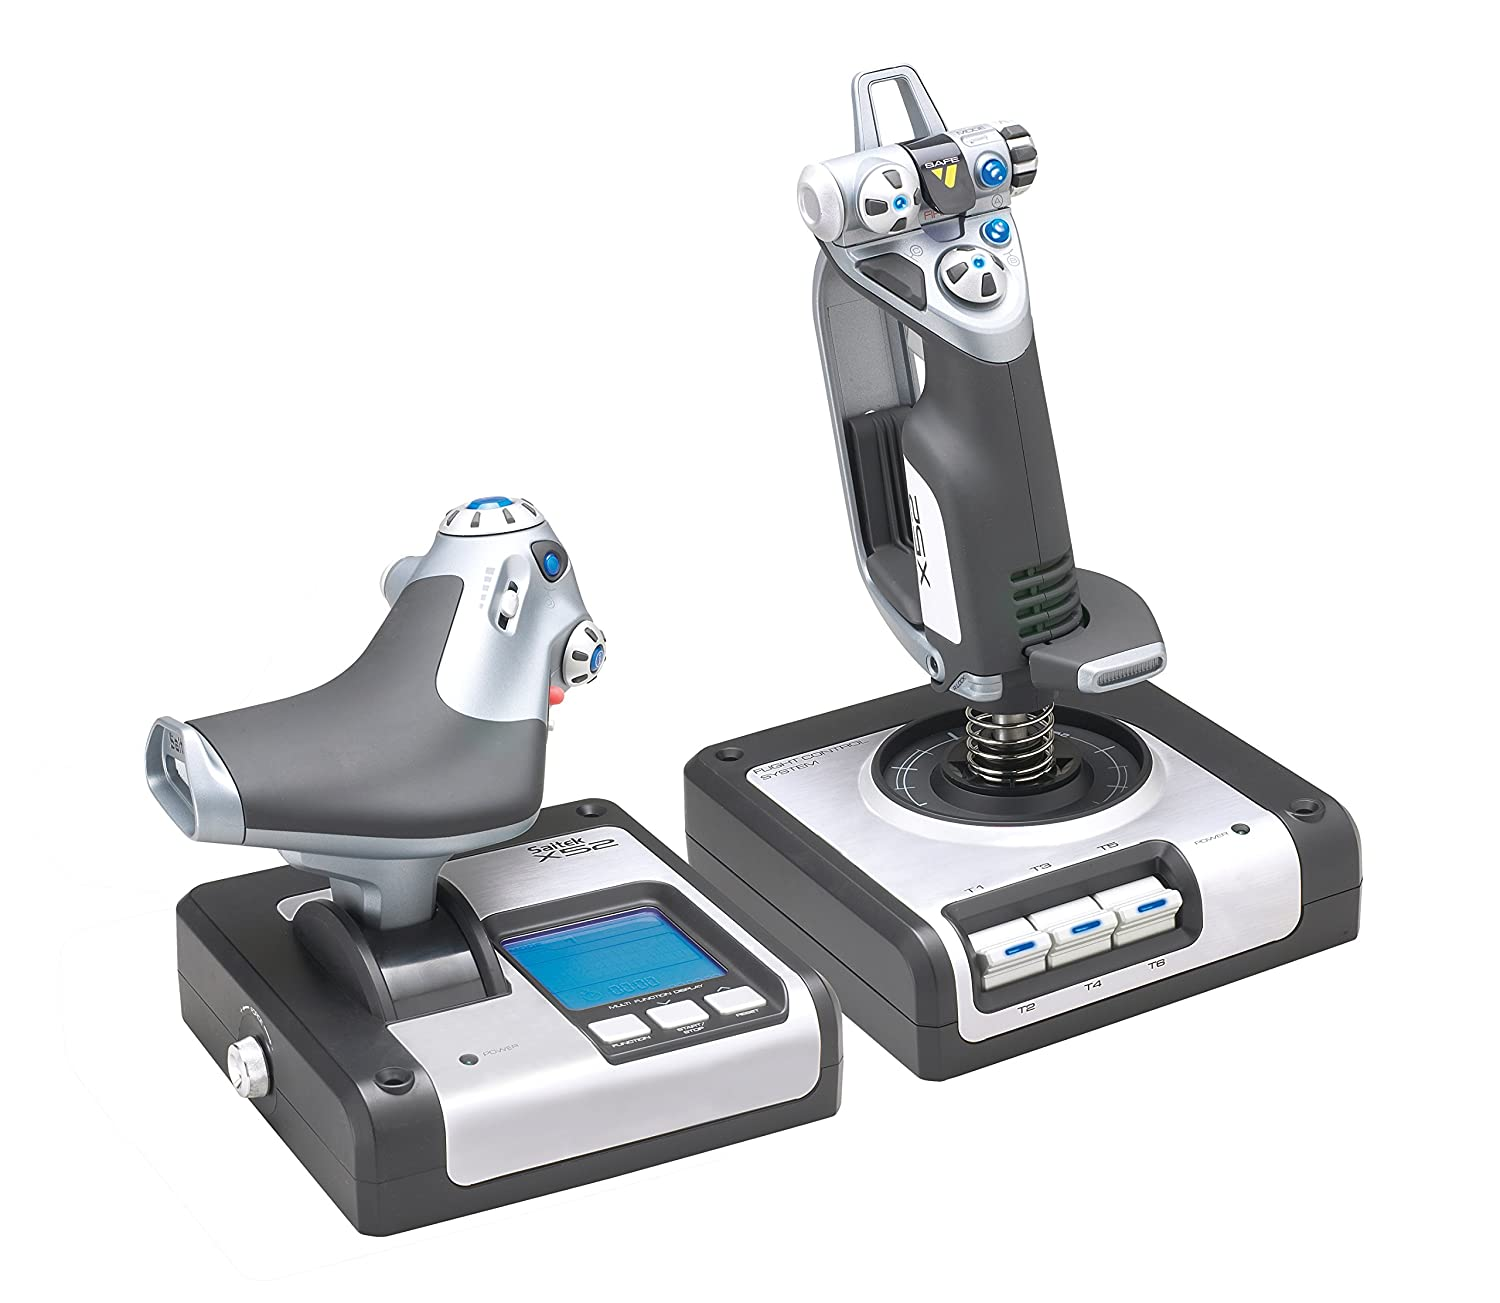 3109df7b518 Buy Logitech G Saitek X52 Pro Flight Control System Online at Low Prices in  India | Logitech Video Games - Amazon.in